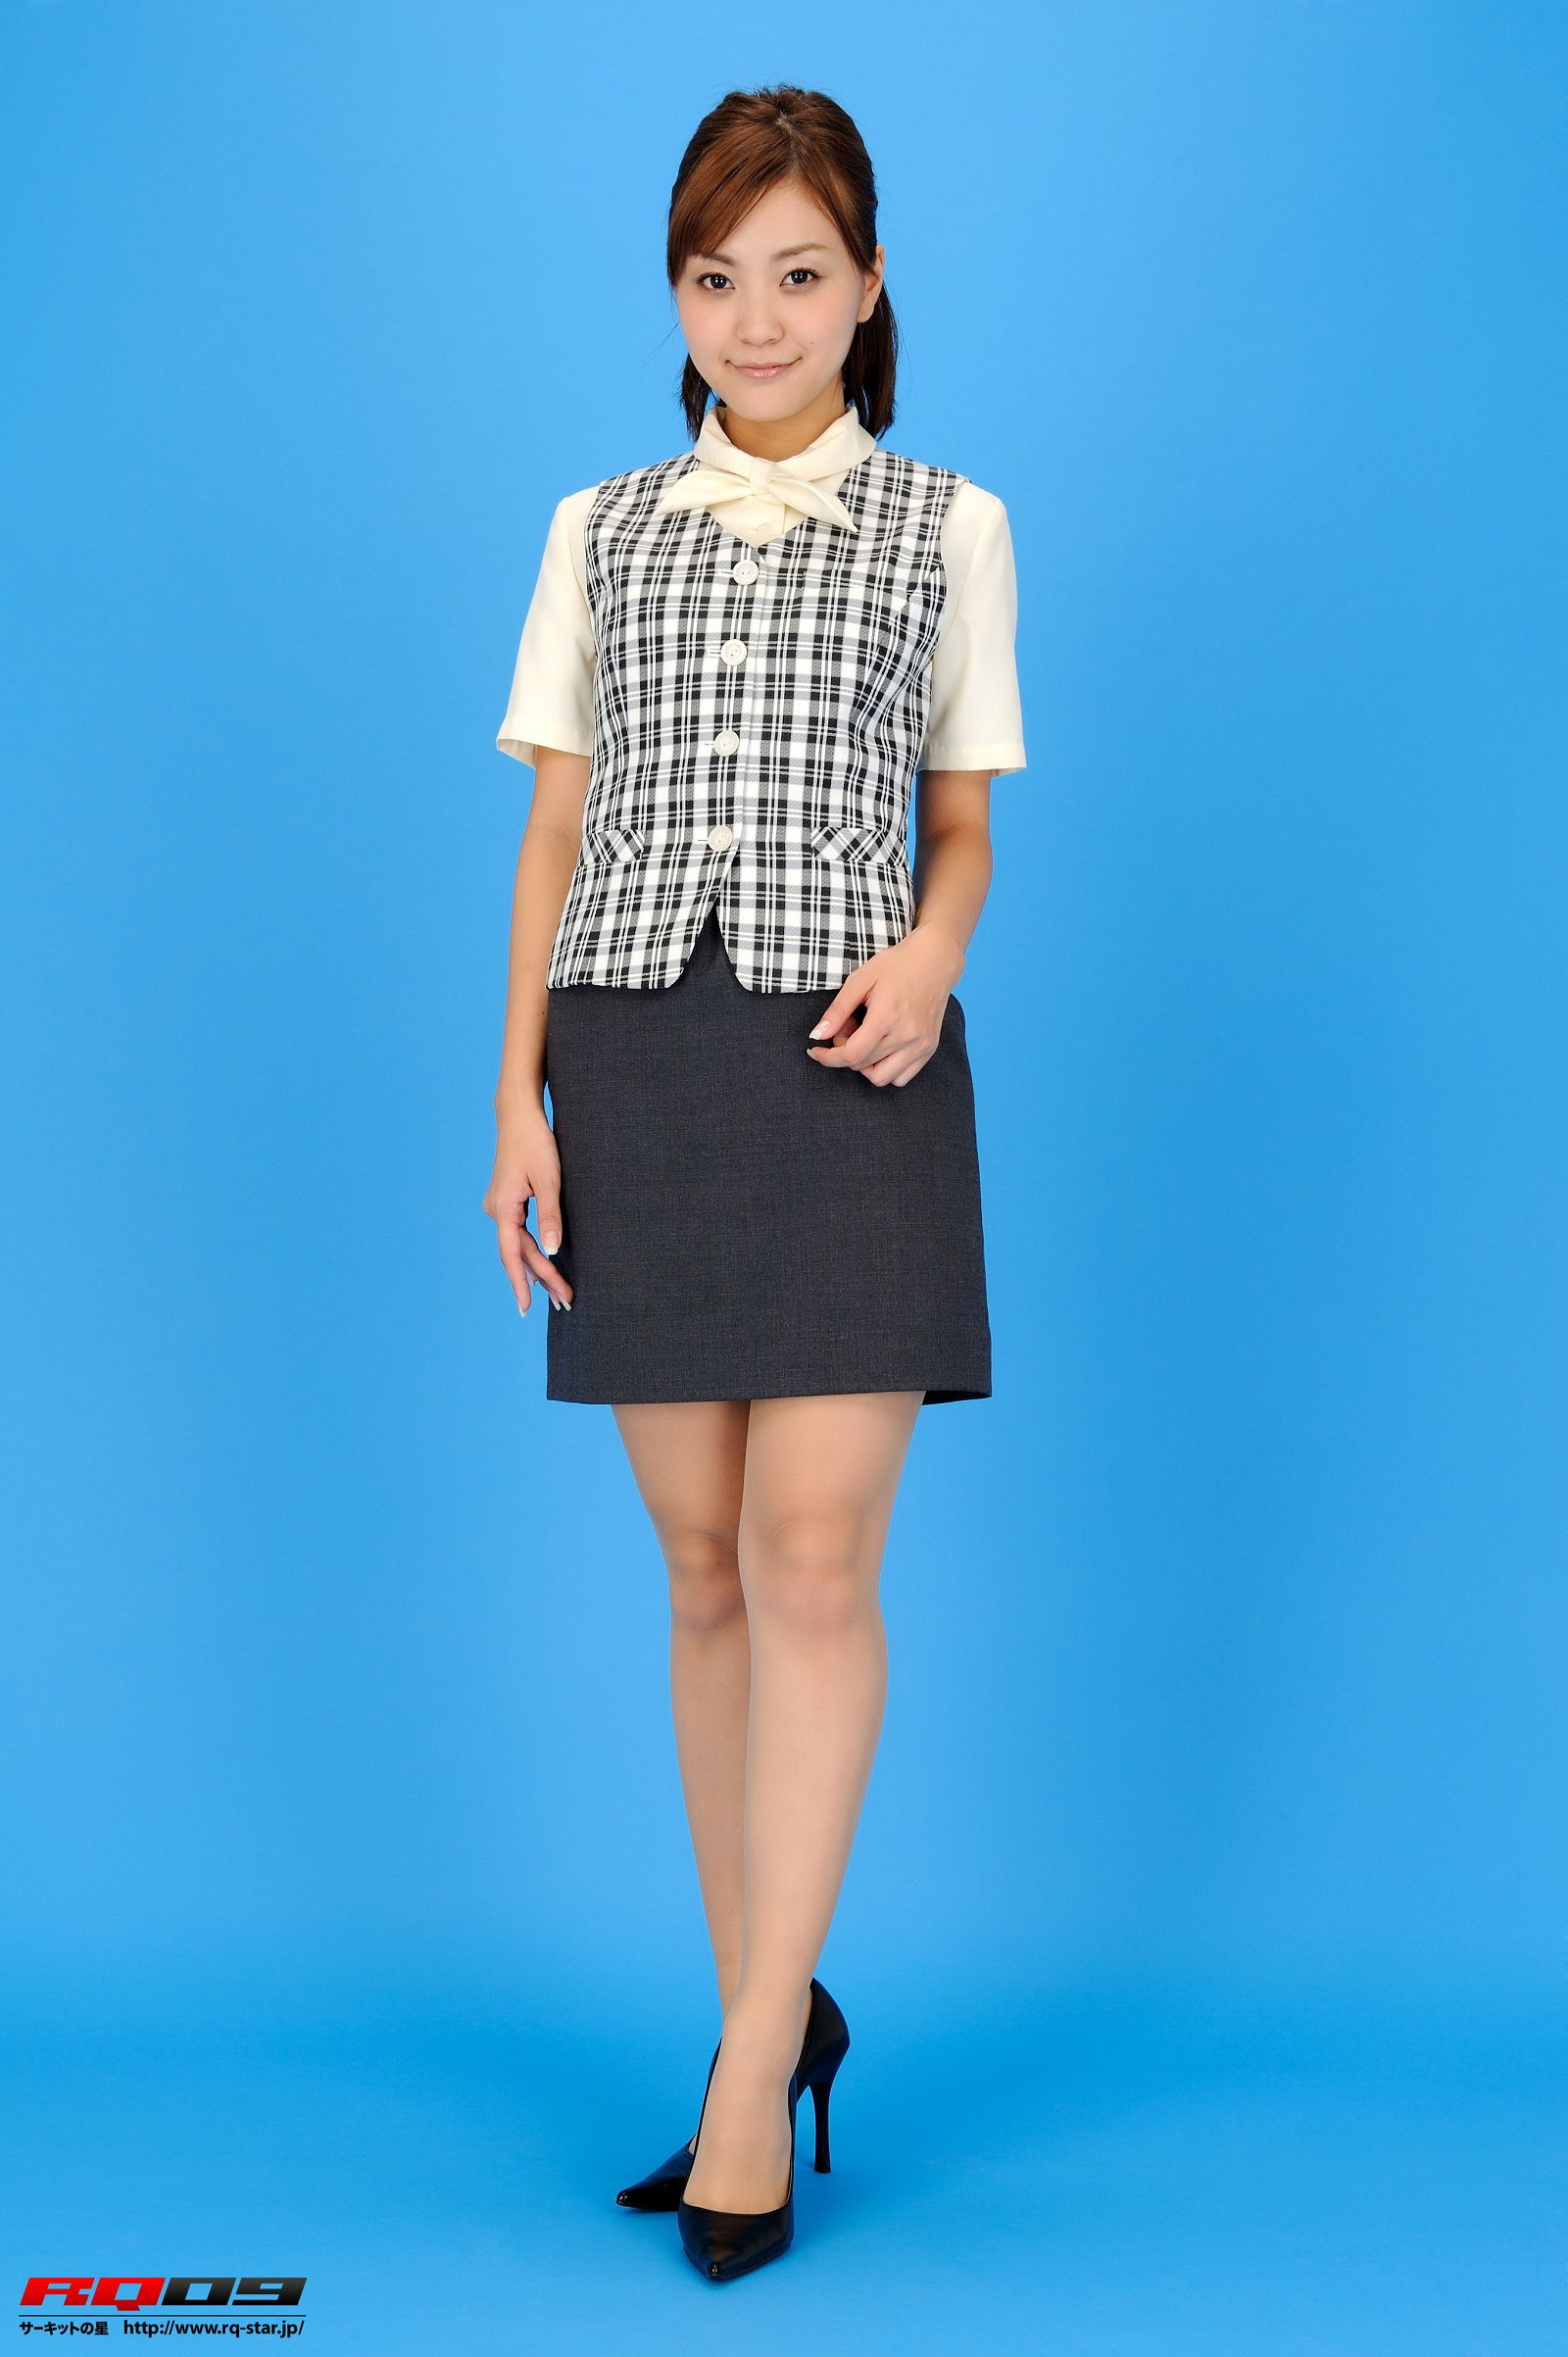 [RQ STAR美女] NO.0230 Mina Momohara 桃原美奈 Office Lady[61P] RQ STAR 第1张